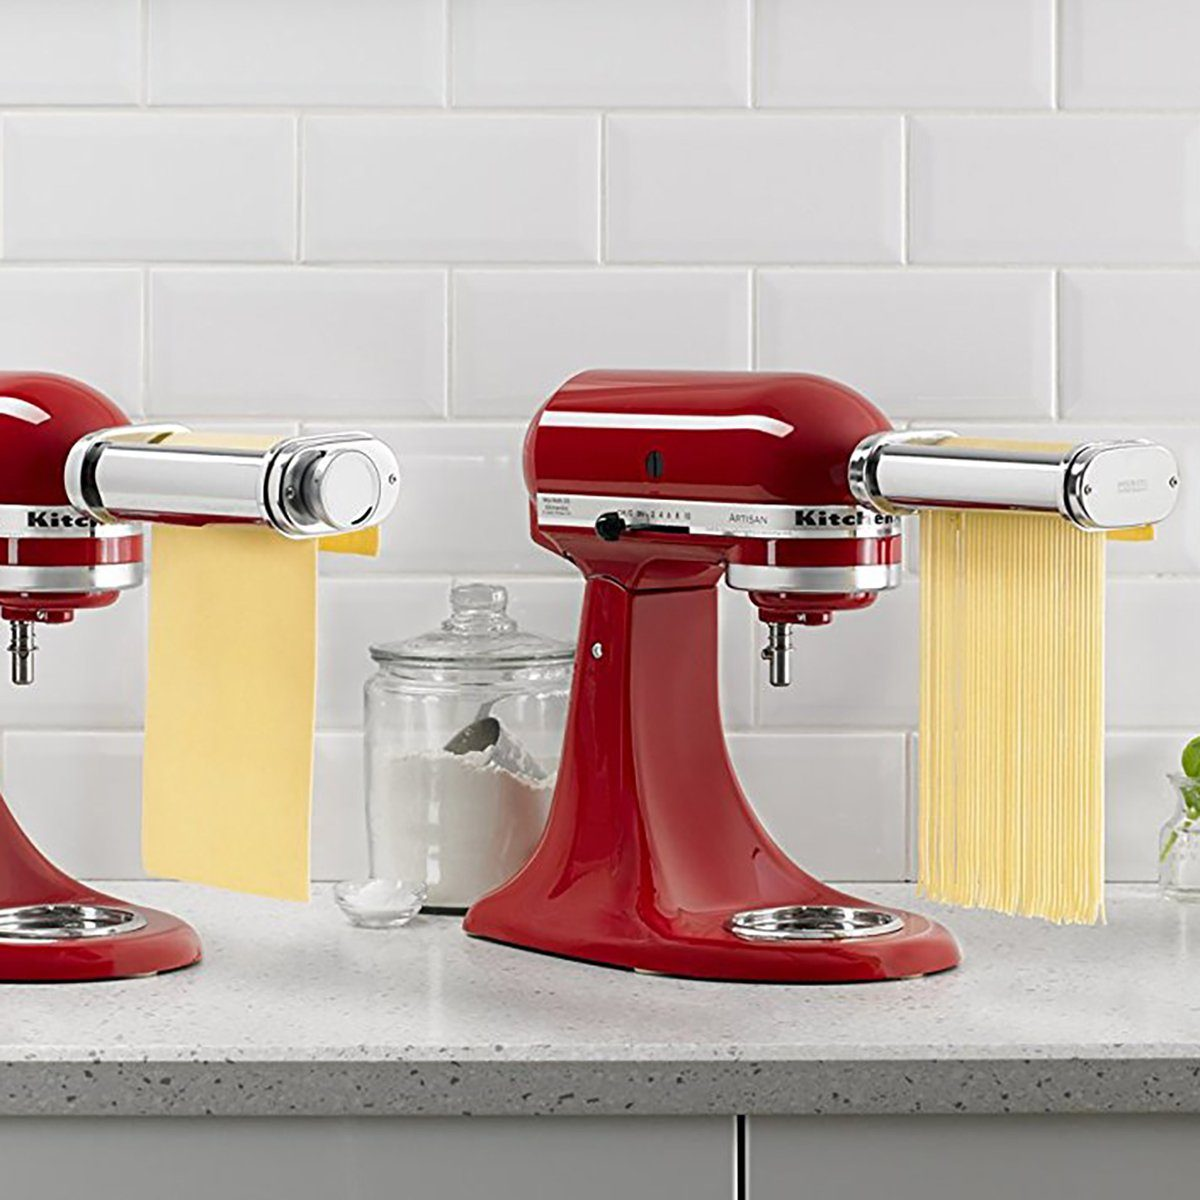 KitchenAid Pasta Sheet Cutter